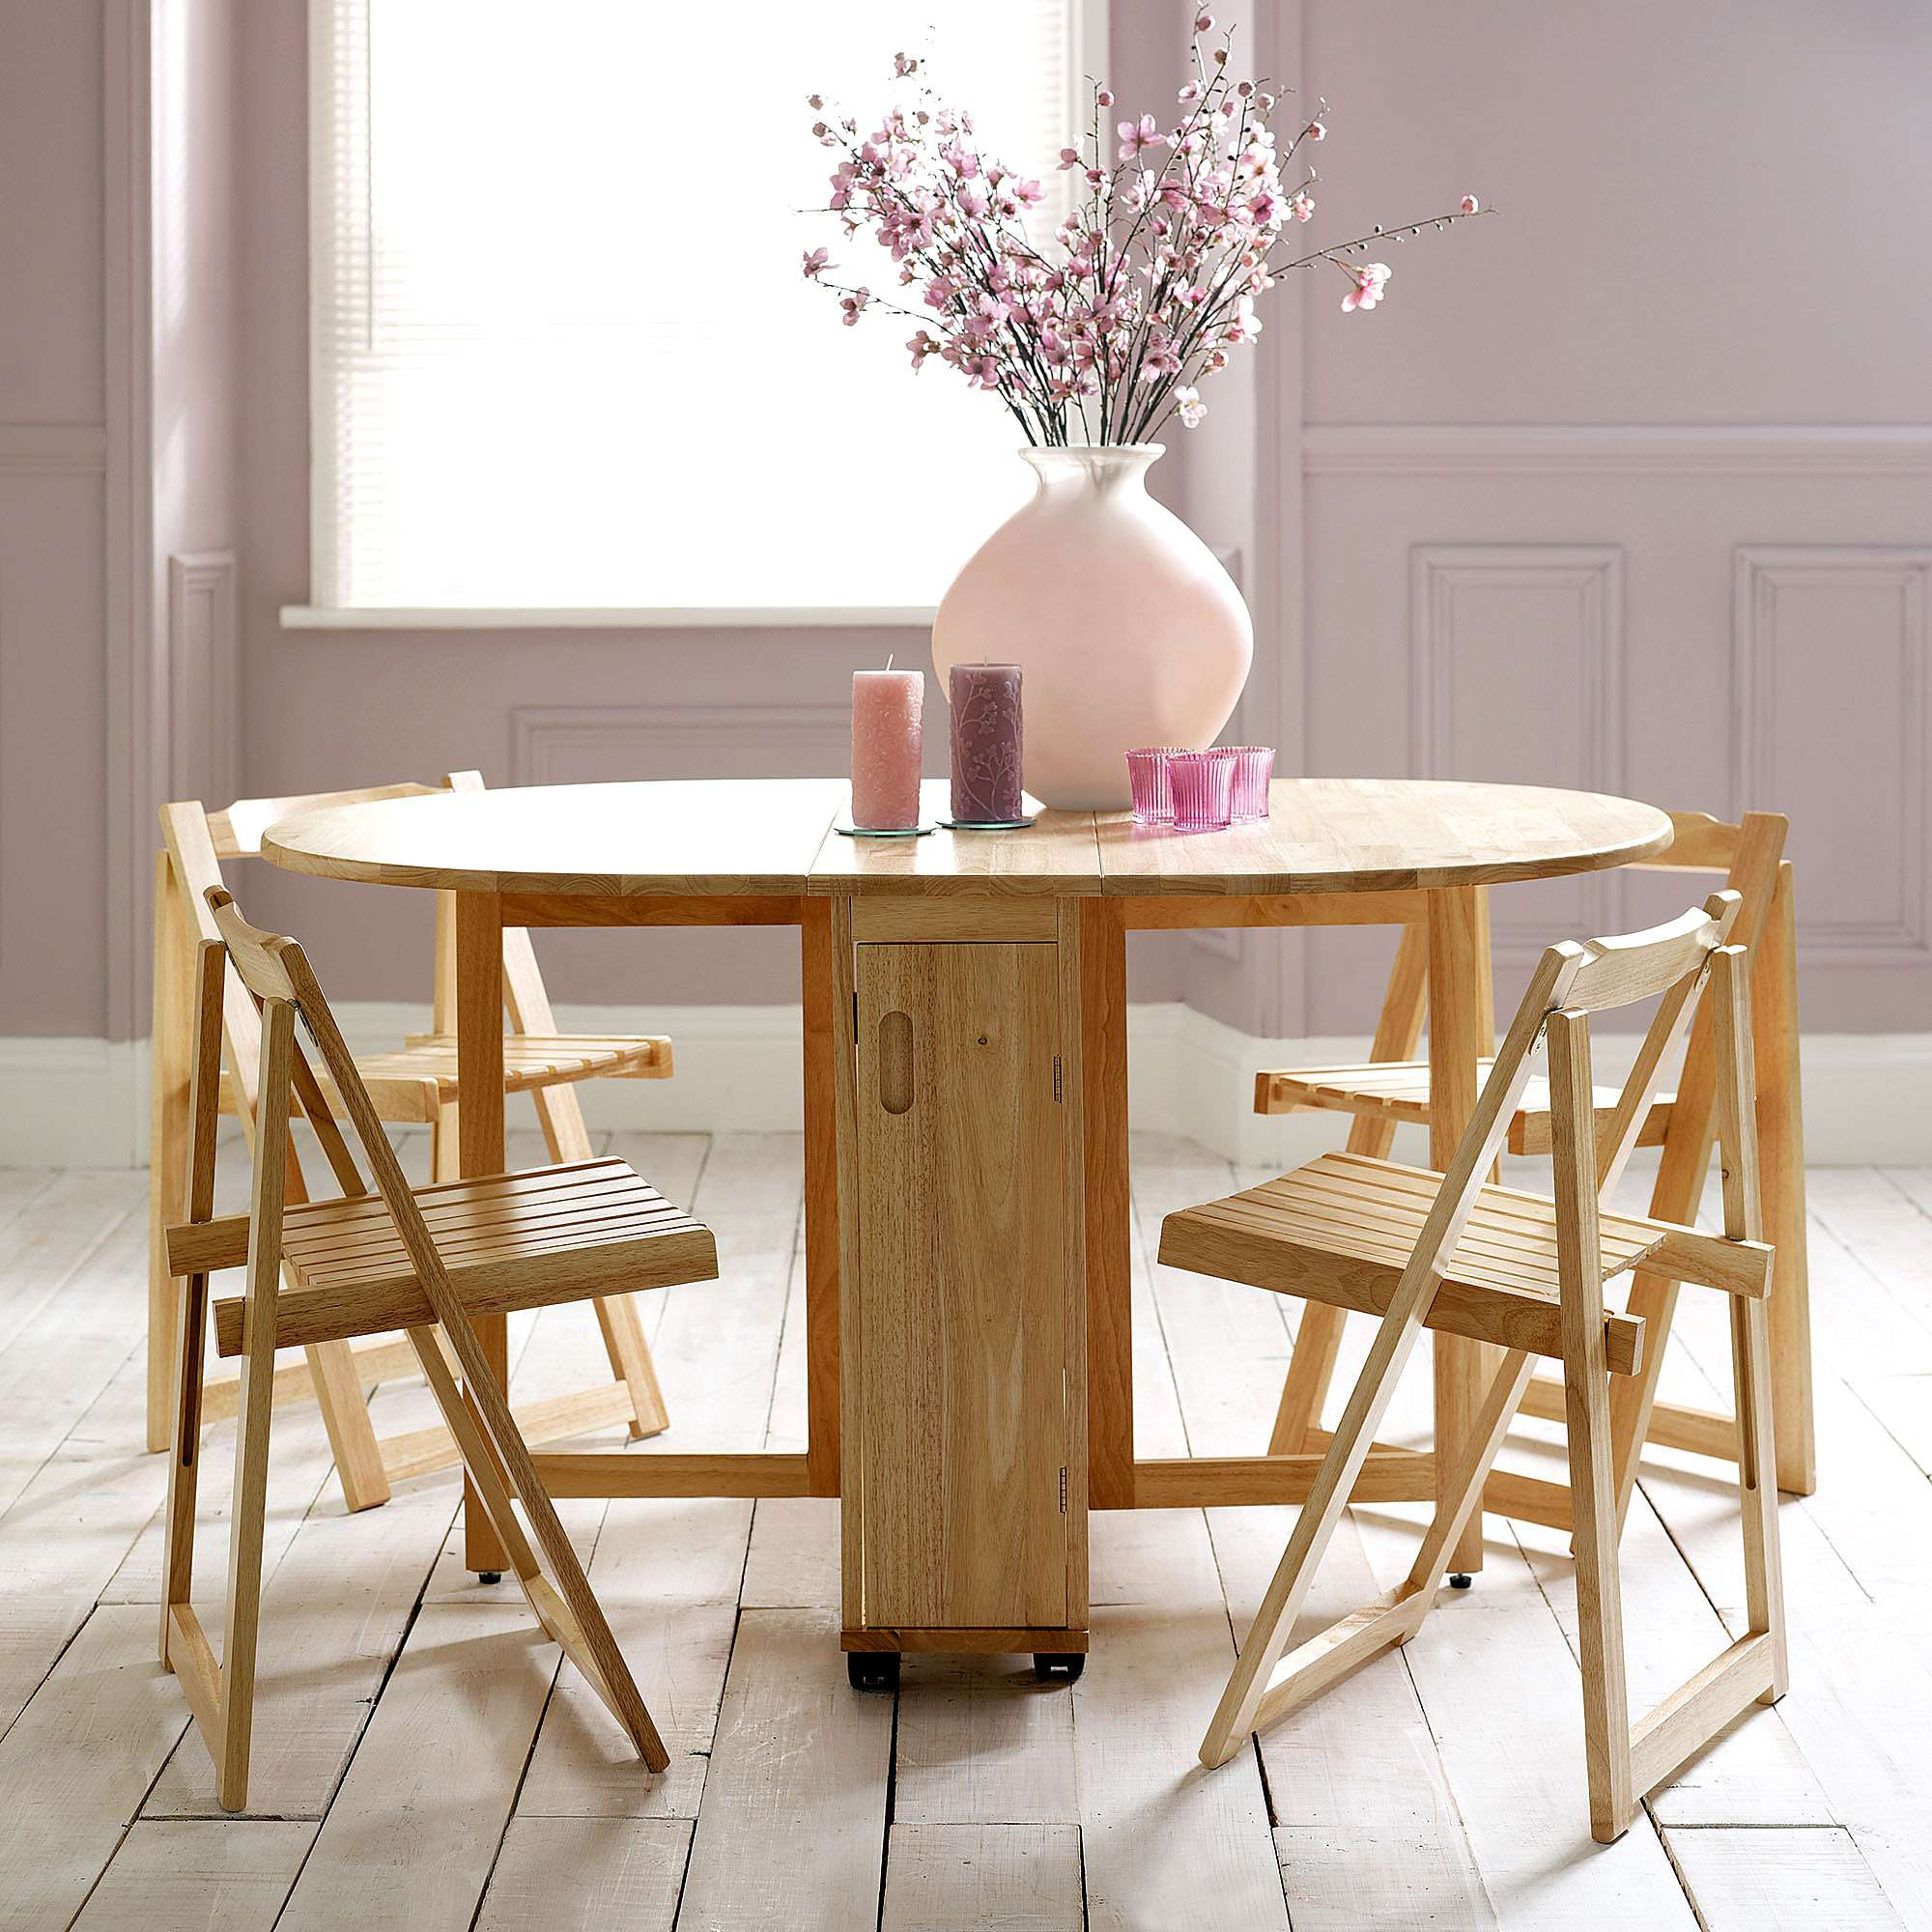 Timber Dining Tables And Chairs Choose A Folding Dining Table For A Small Space Adorable Home